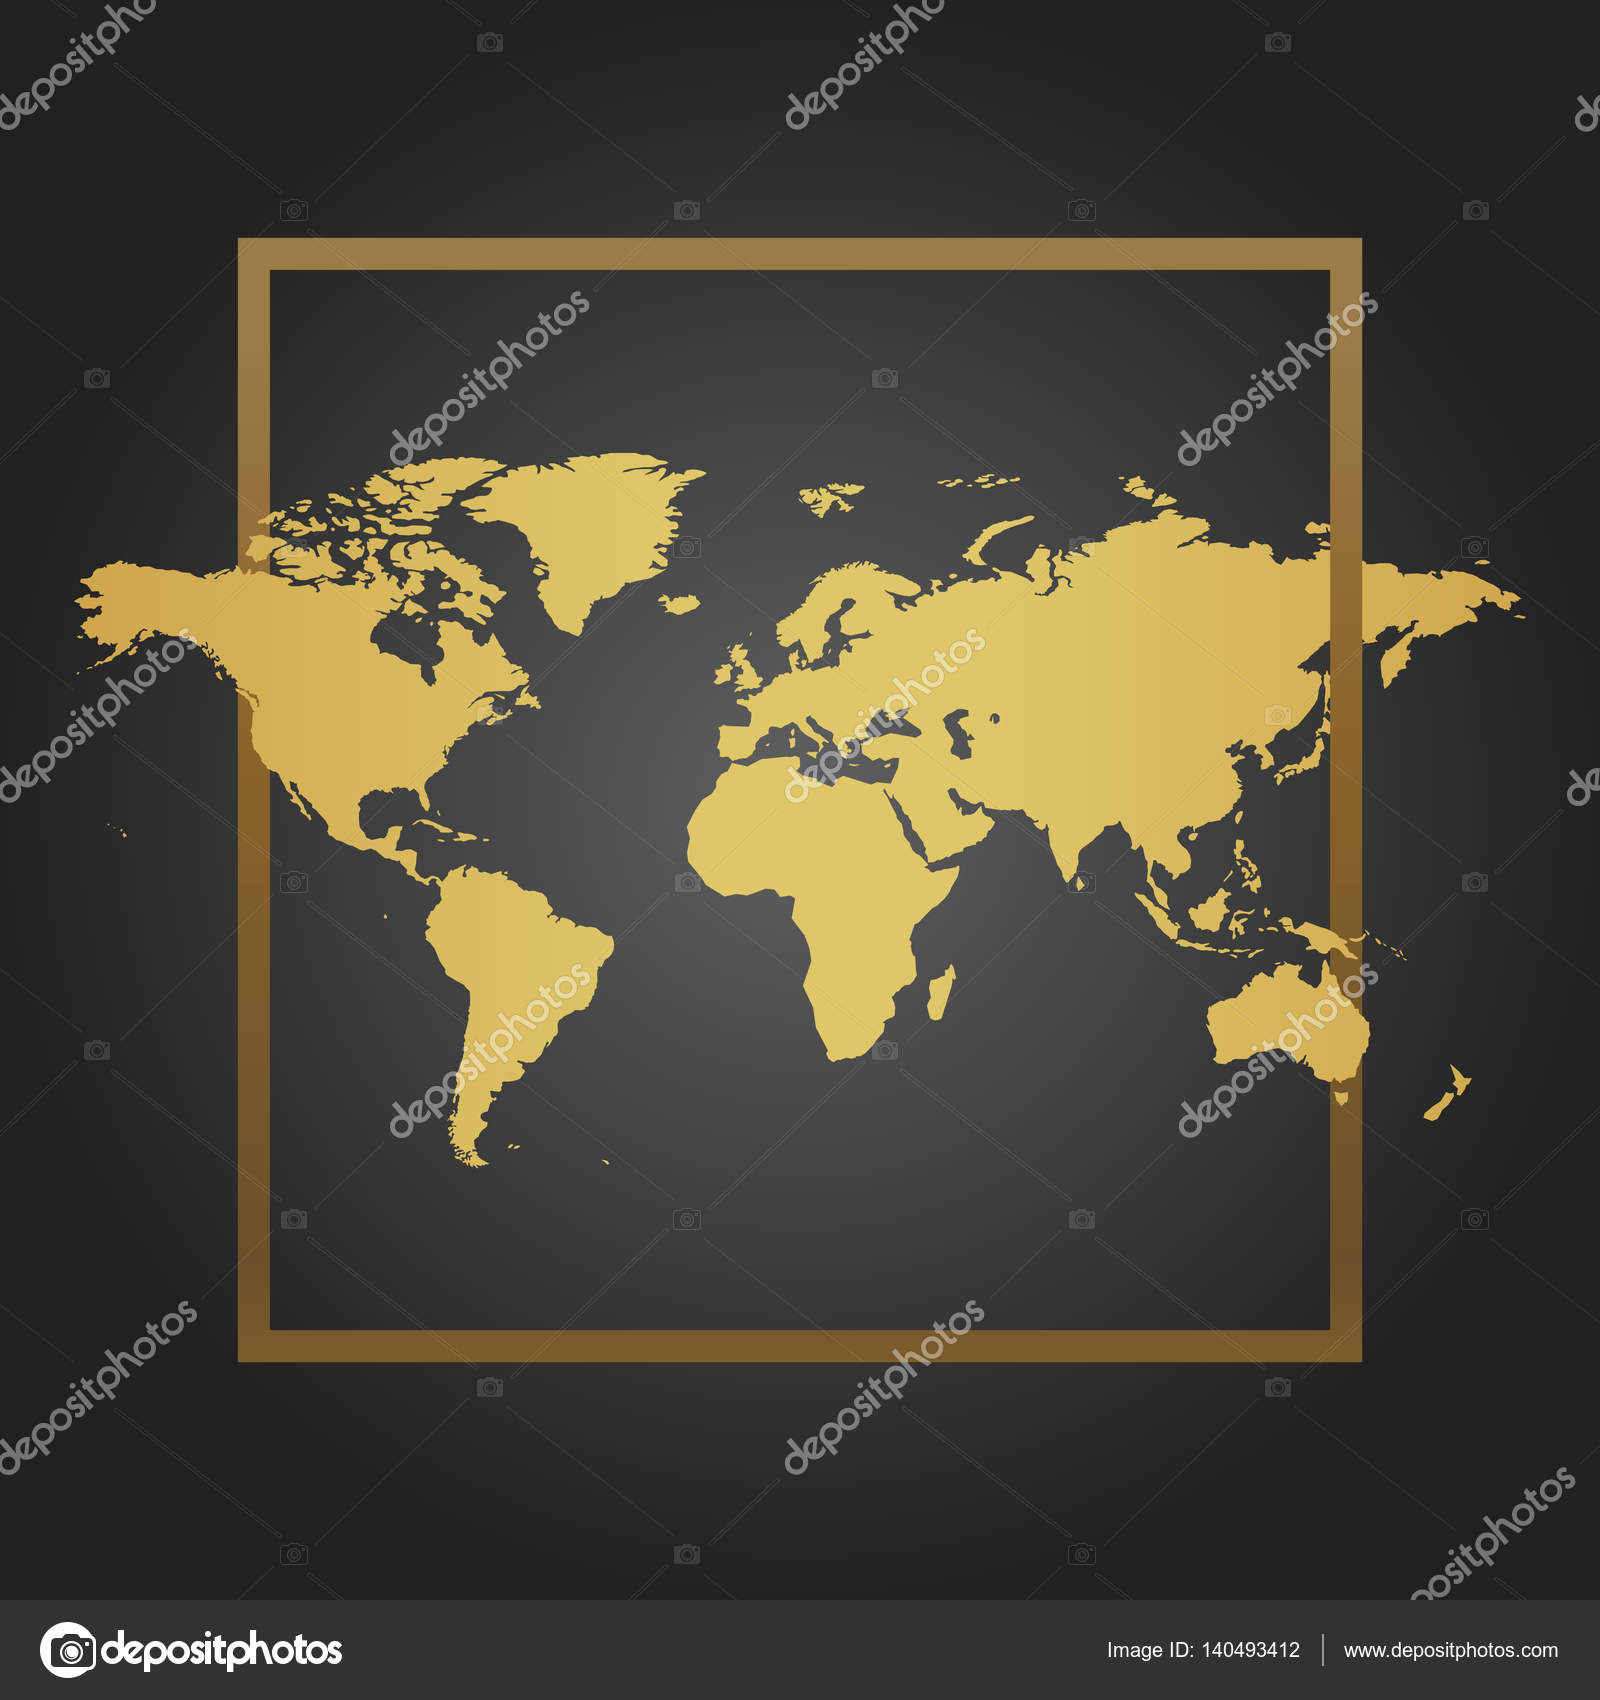 Golden political world map in black background with frame space for golden political world map in black background with frame space for text and quotes gumiabroncs Images